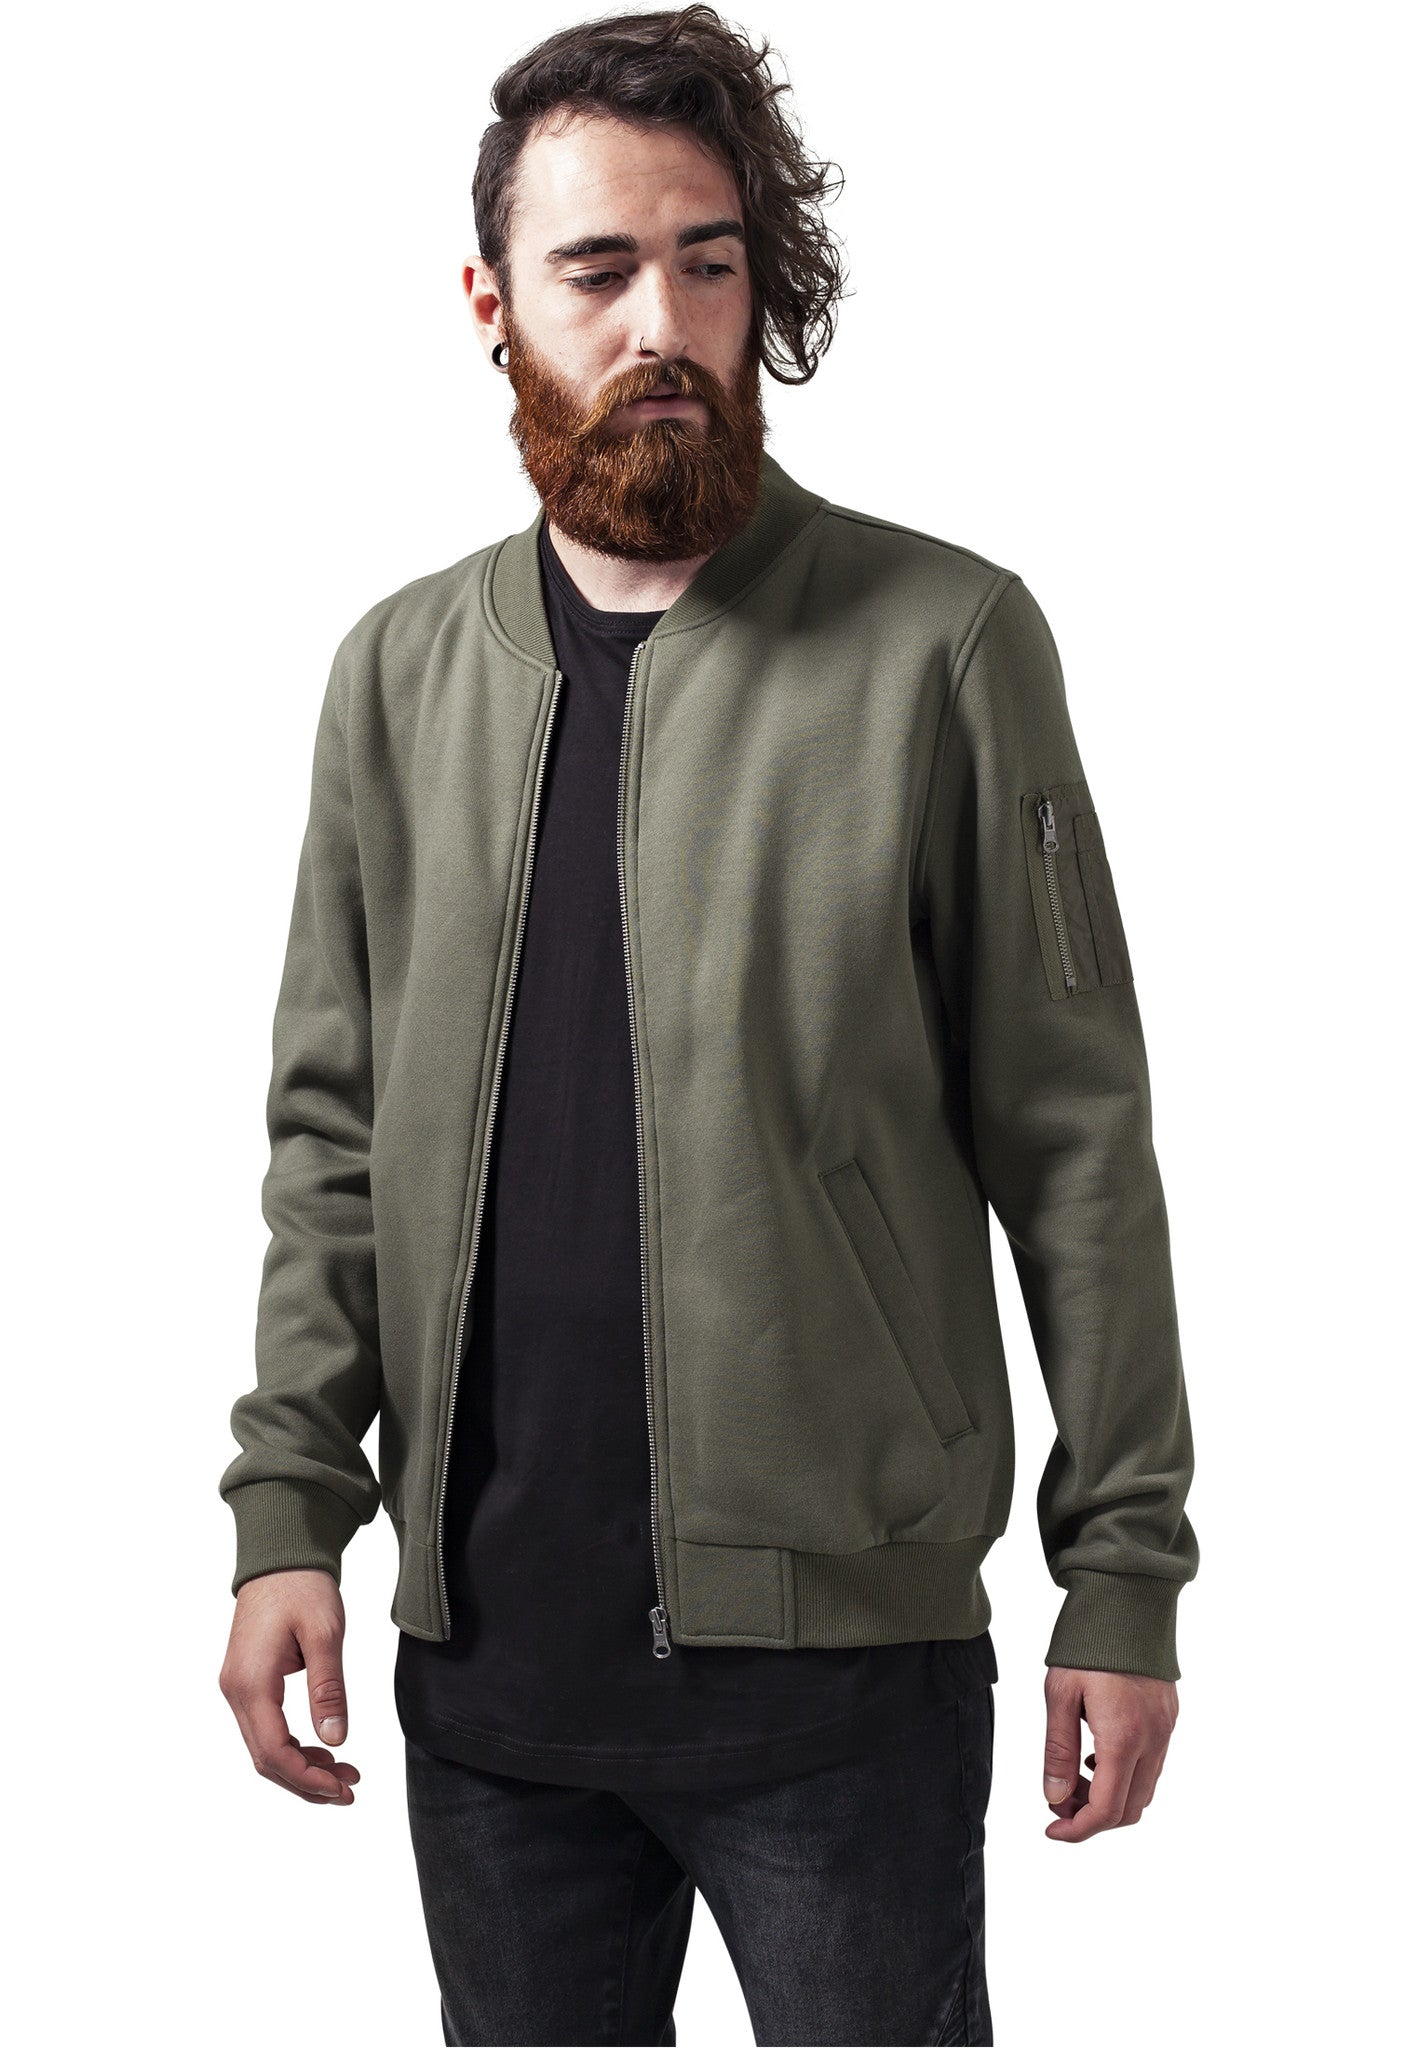 Sweat Bomber Jacket TB1409 Green